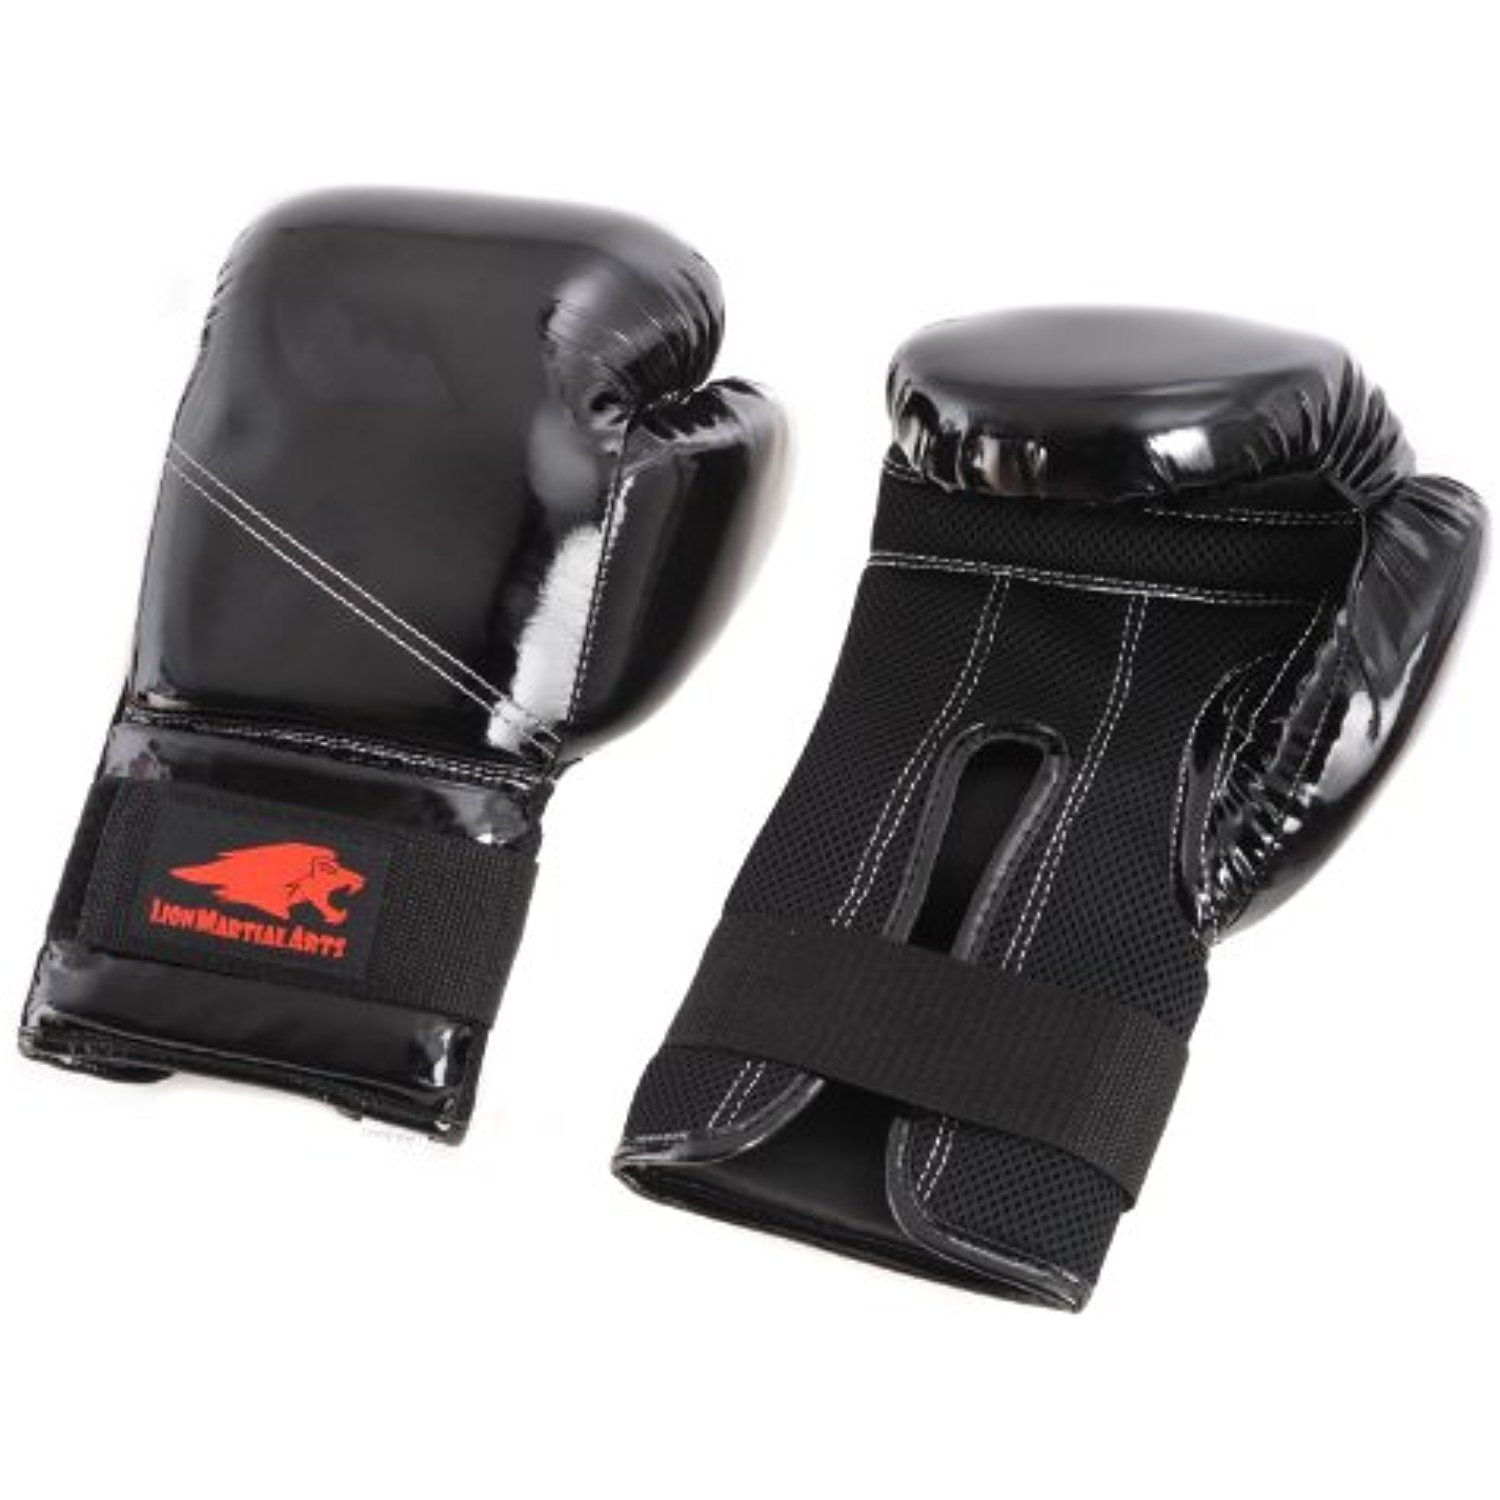 Includes Bag Gloves /& Mouthguard New adidas Leather Training Boxing Gloves Set